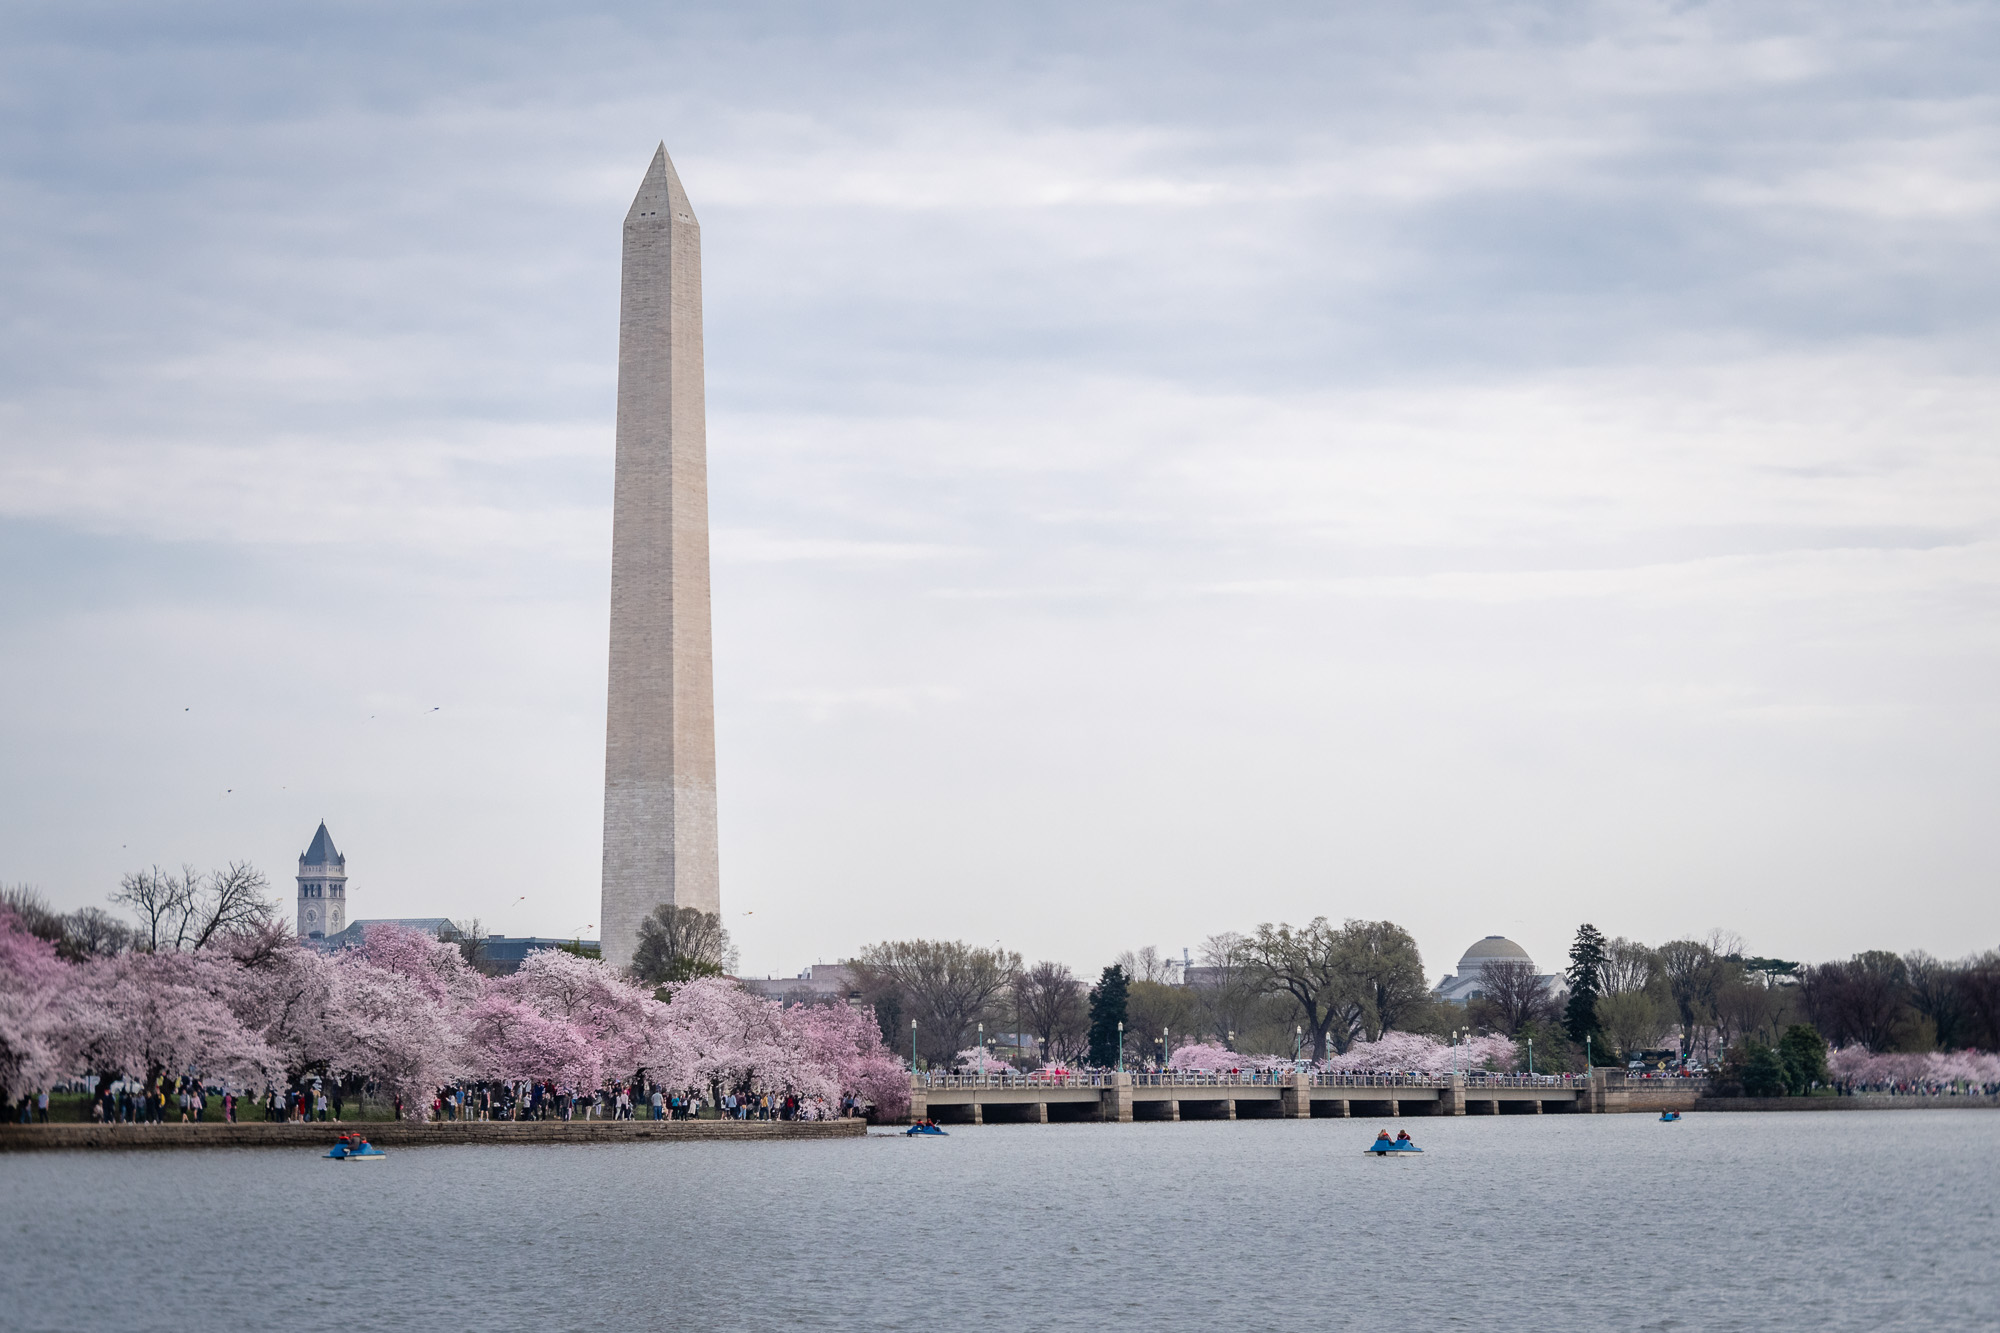 Washington Monument Cherry Blossom Crowds